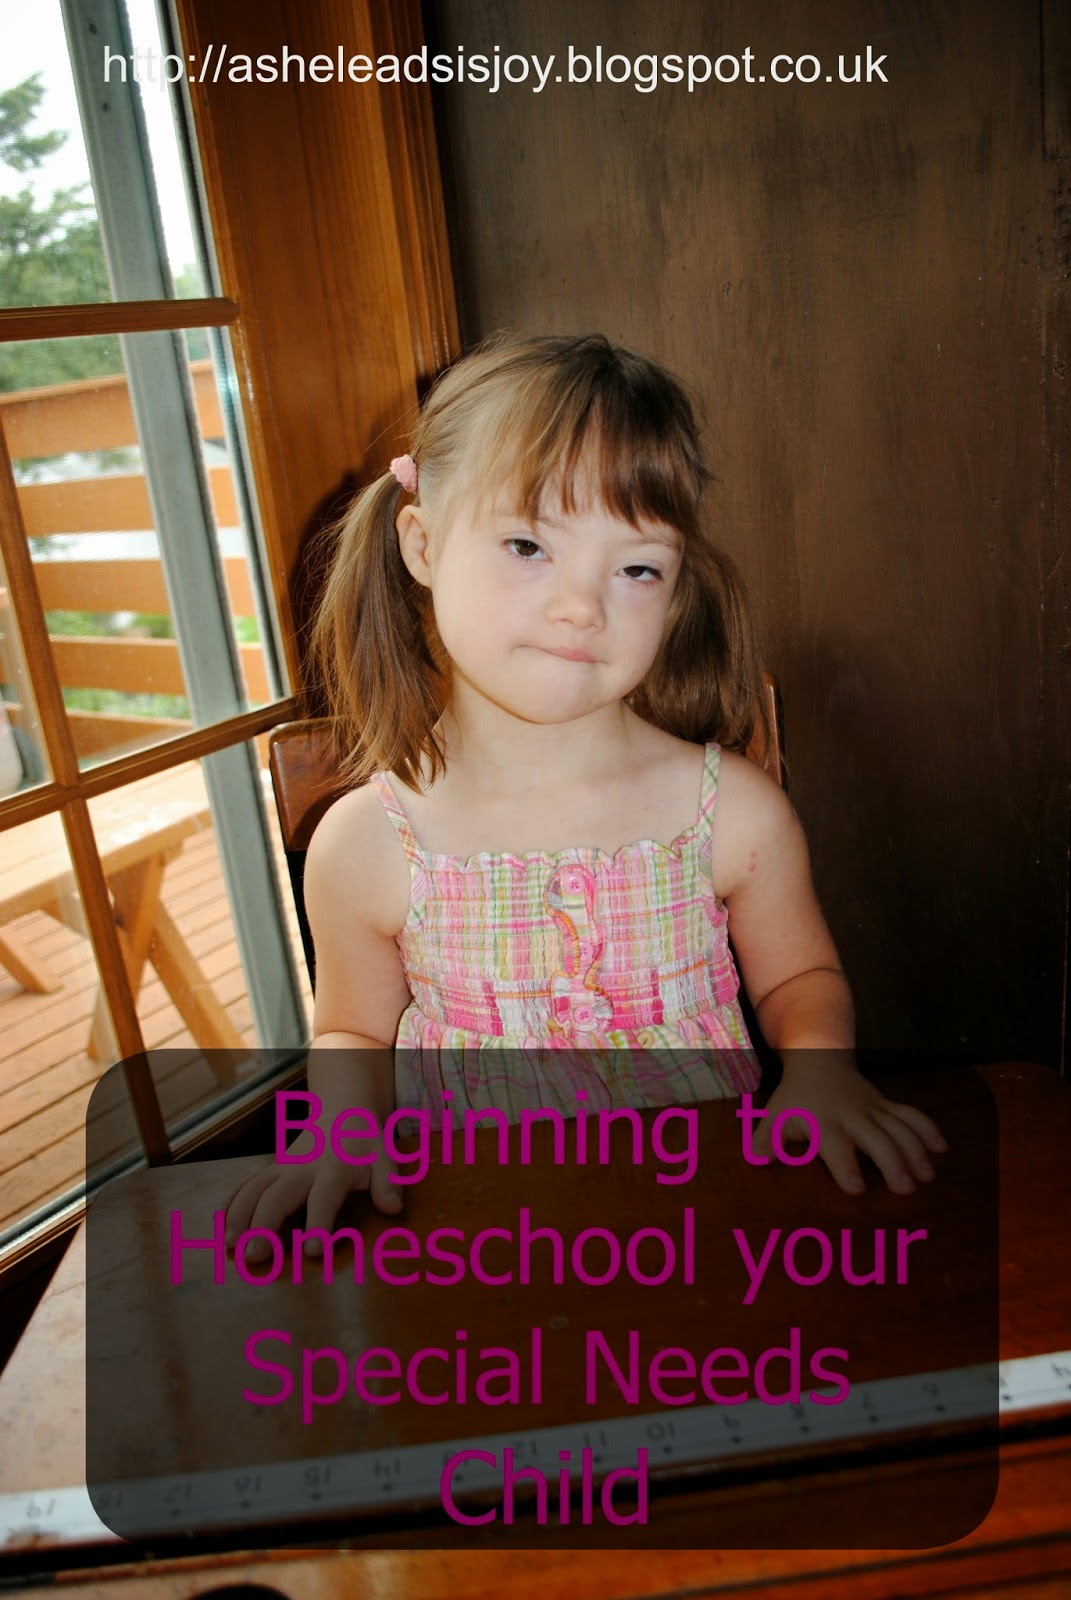 Begining to Homeschool Your Special needs Student